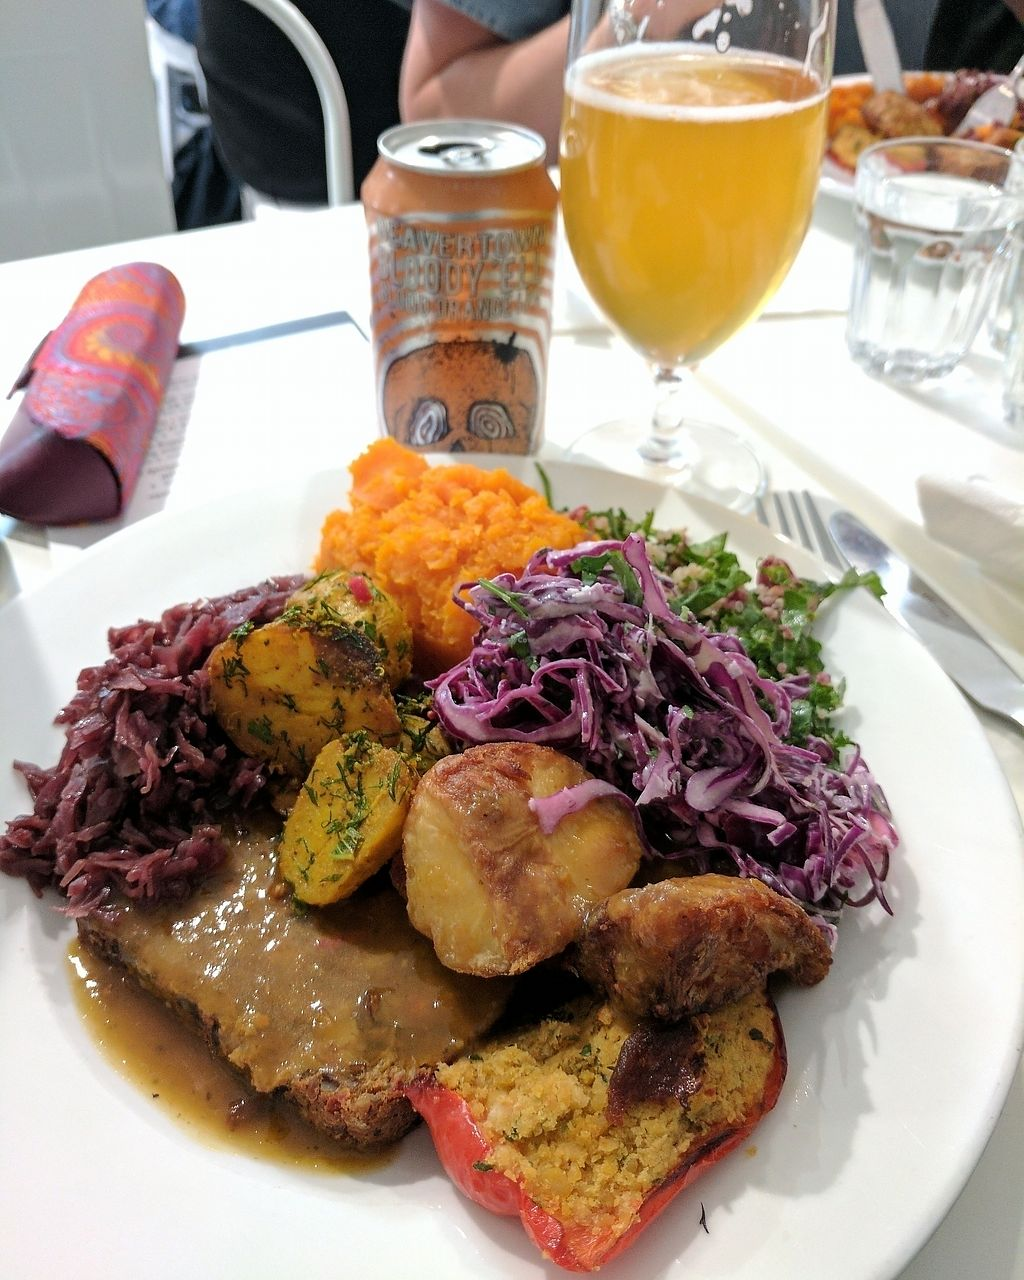 """Photo of Stem + Glory - Chesterton Rd  by <a href=""""/members/profile/FurryFury"""">FurryFury</a> <br/>Sunday roast? OH YESSSS! <br/> July 16, 2017  - <a href='/contact/abuse/image/80866/281031'>Report</a>"""